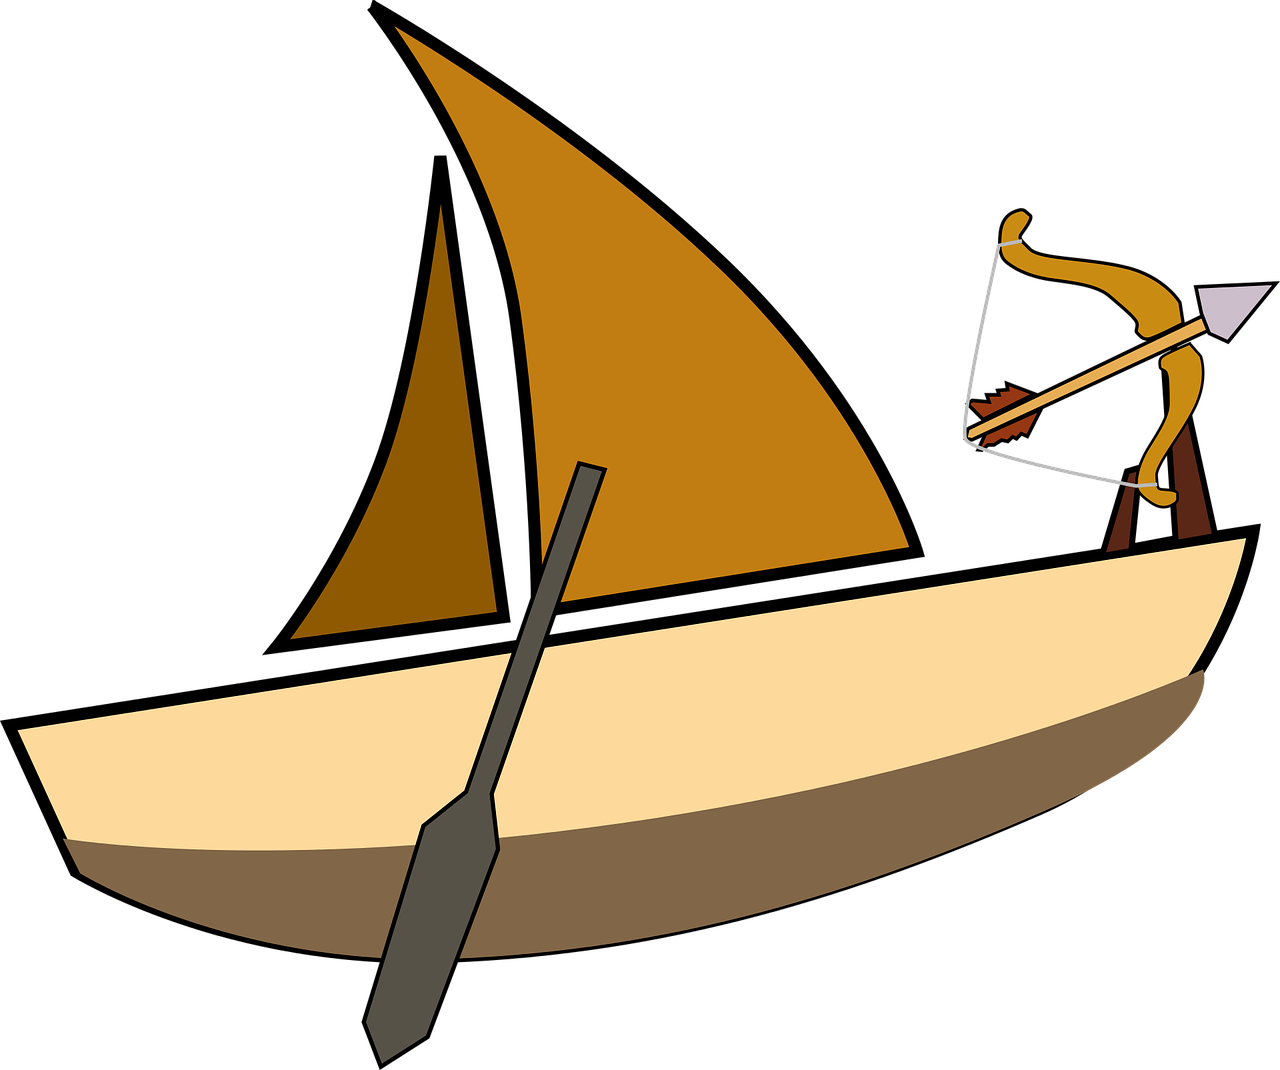 How to draw a boat 16